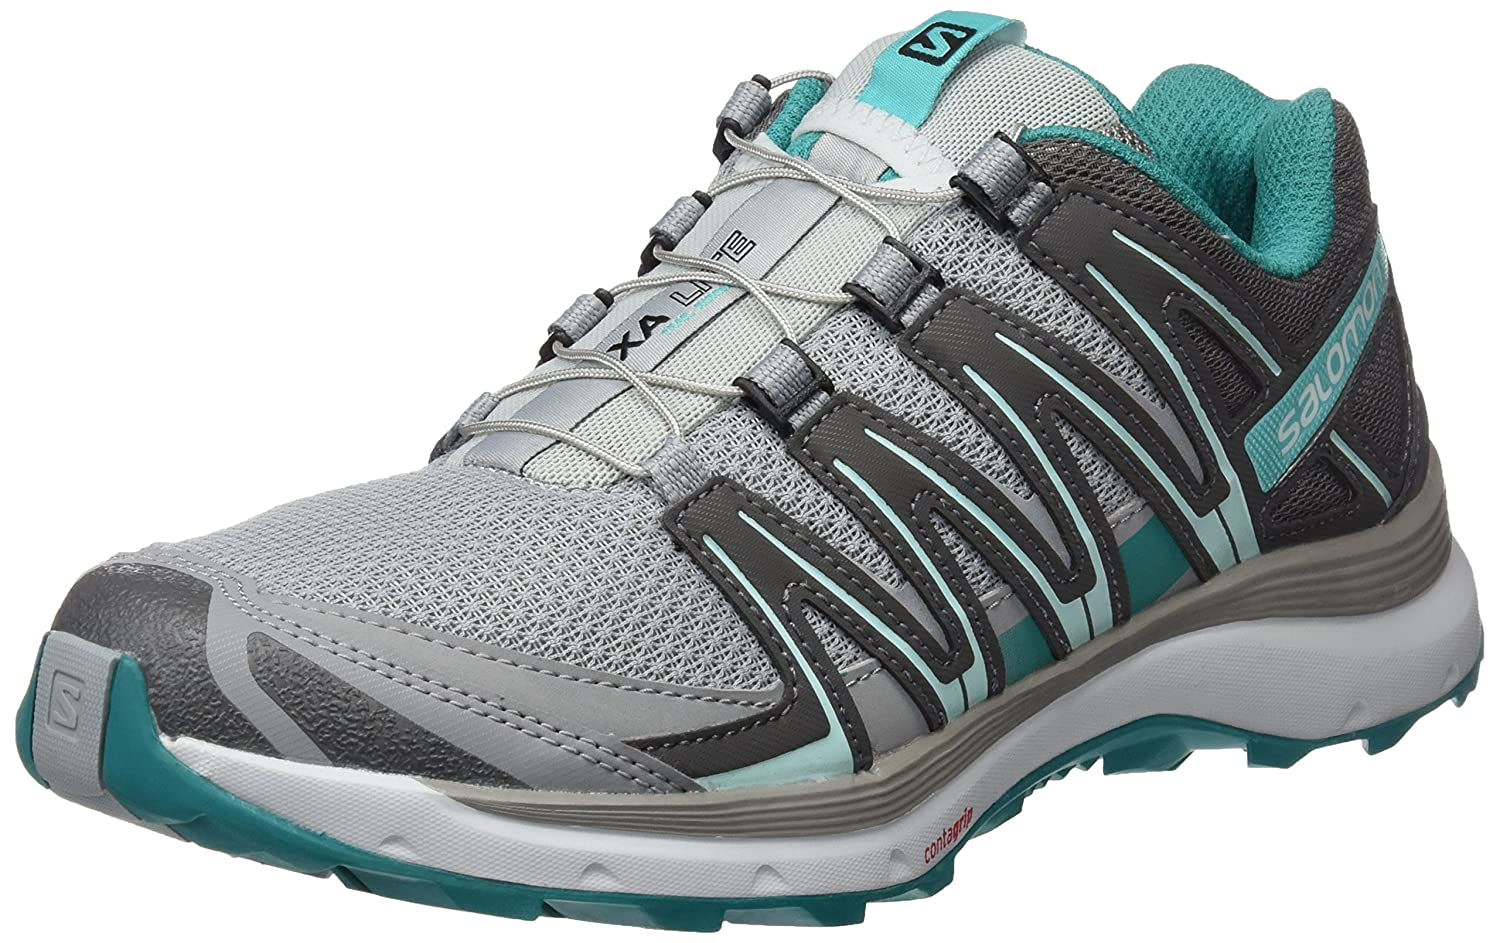 Salomon XA Lite, Calzado de Trail Running para Mujer 43 1/3 EU|Gris (Quarry/Quiet Shade/Deep Peacock Blue)